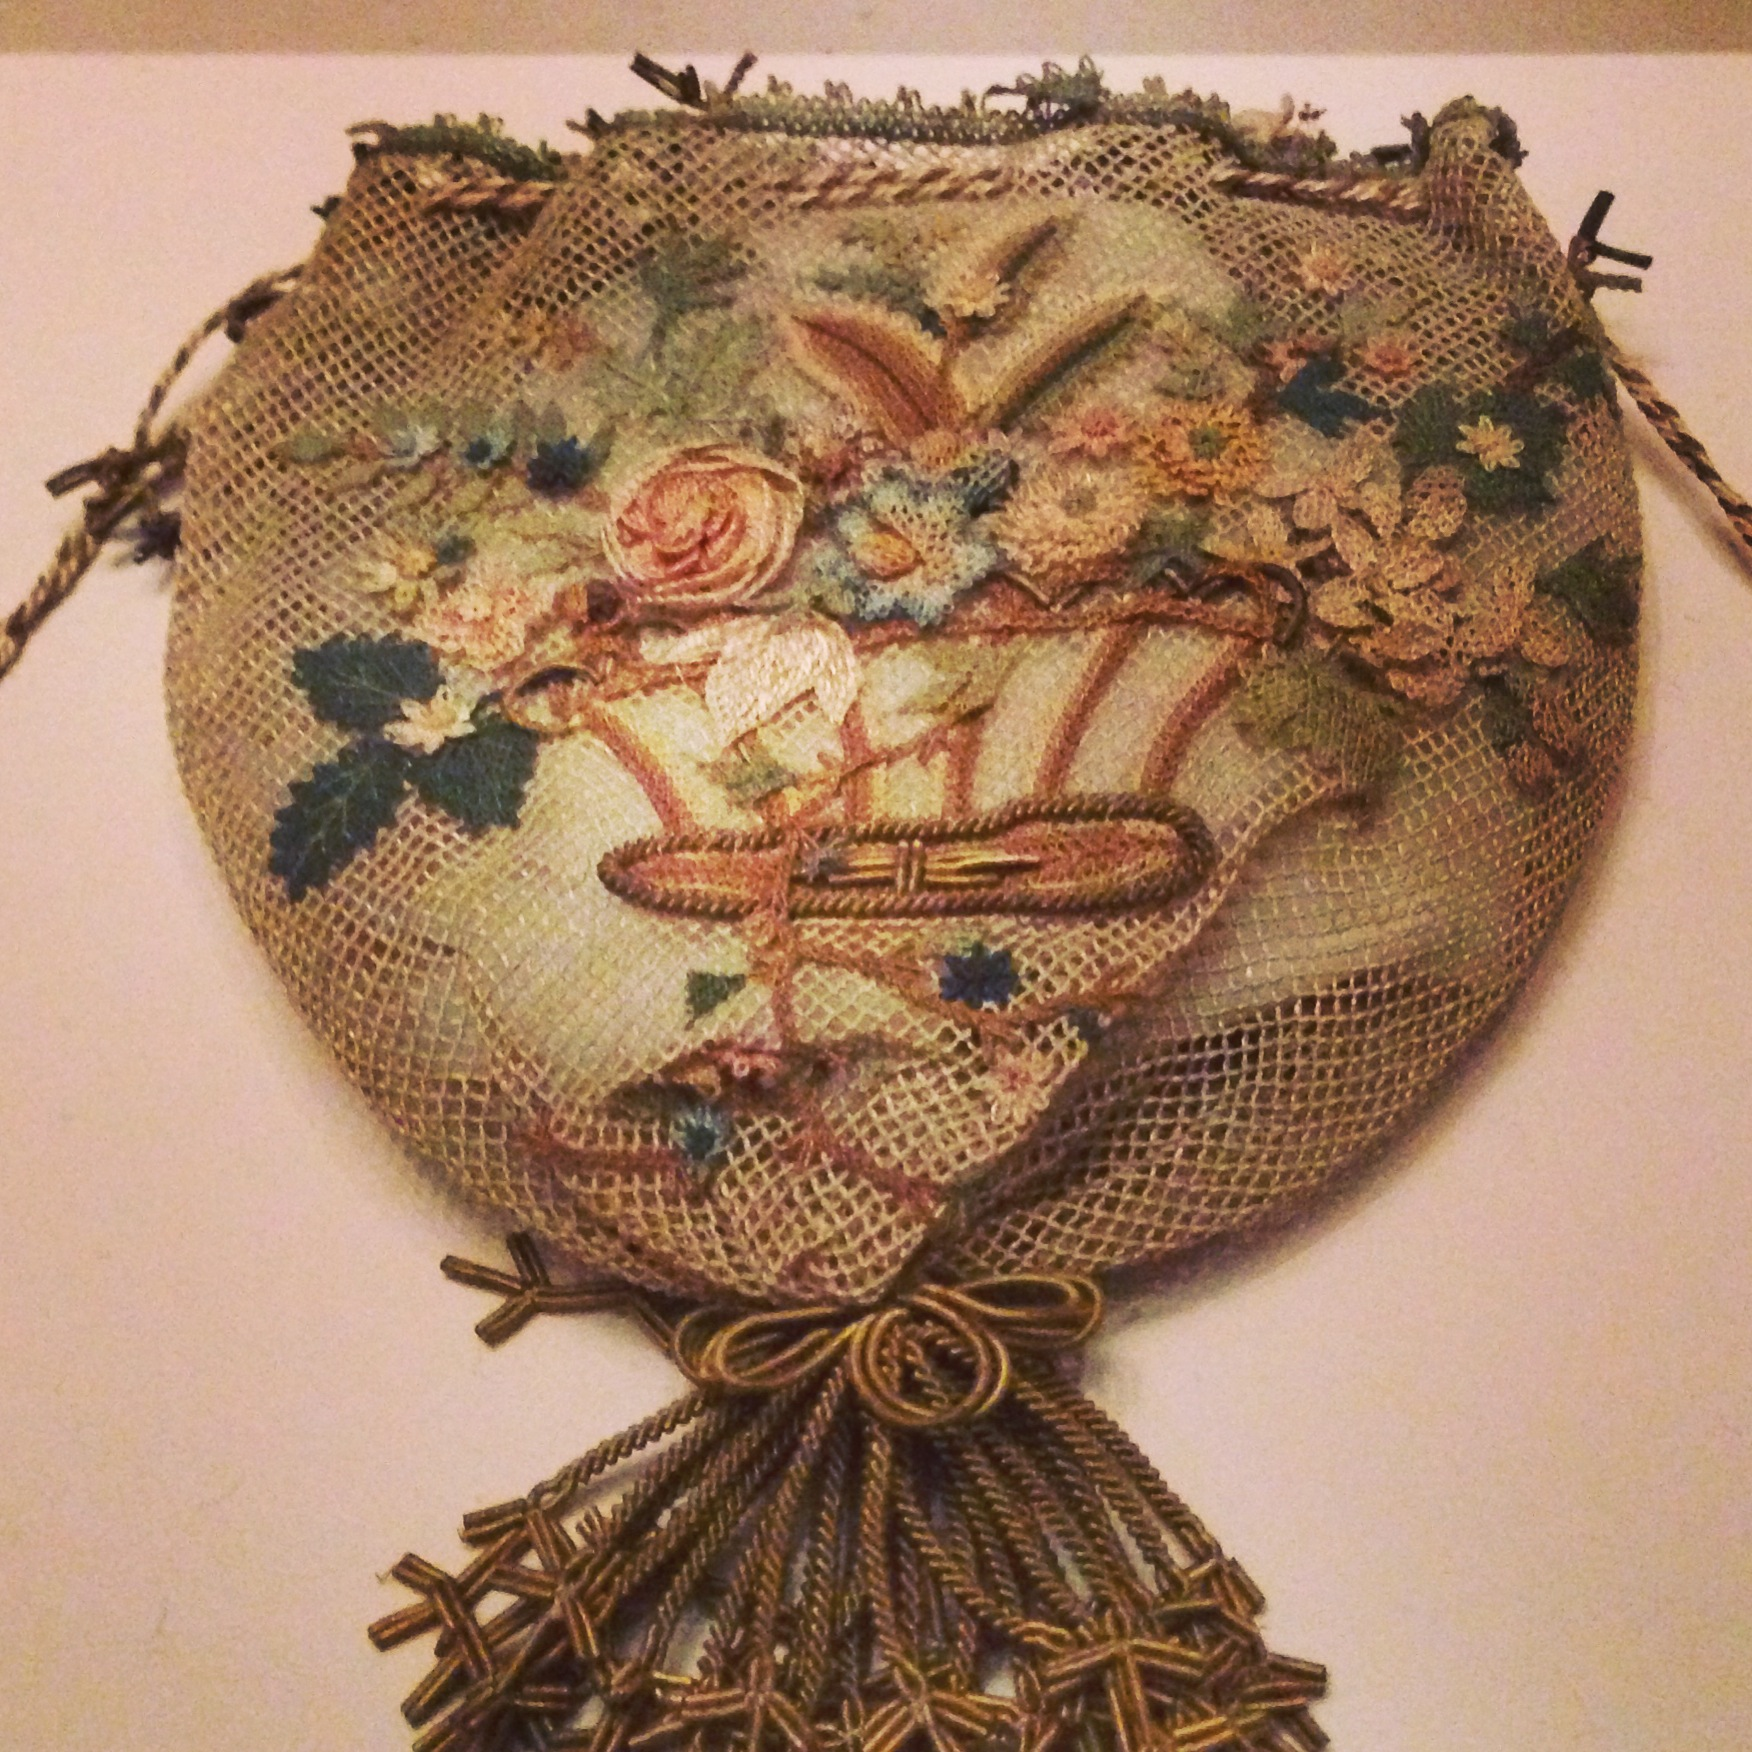 Reticule of tulle embroidered with flowers in relief, Lady Ponsonby, Turkey 1841